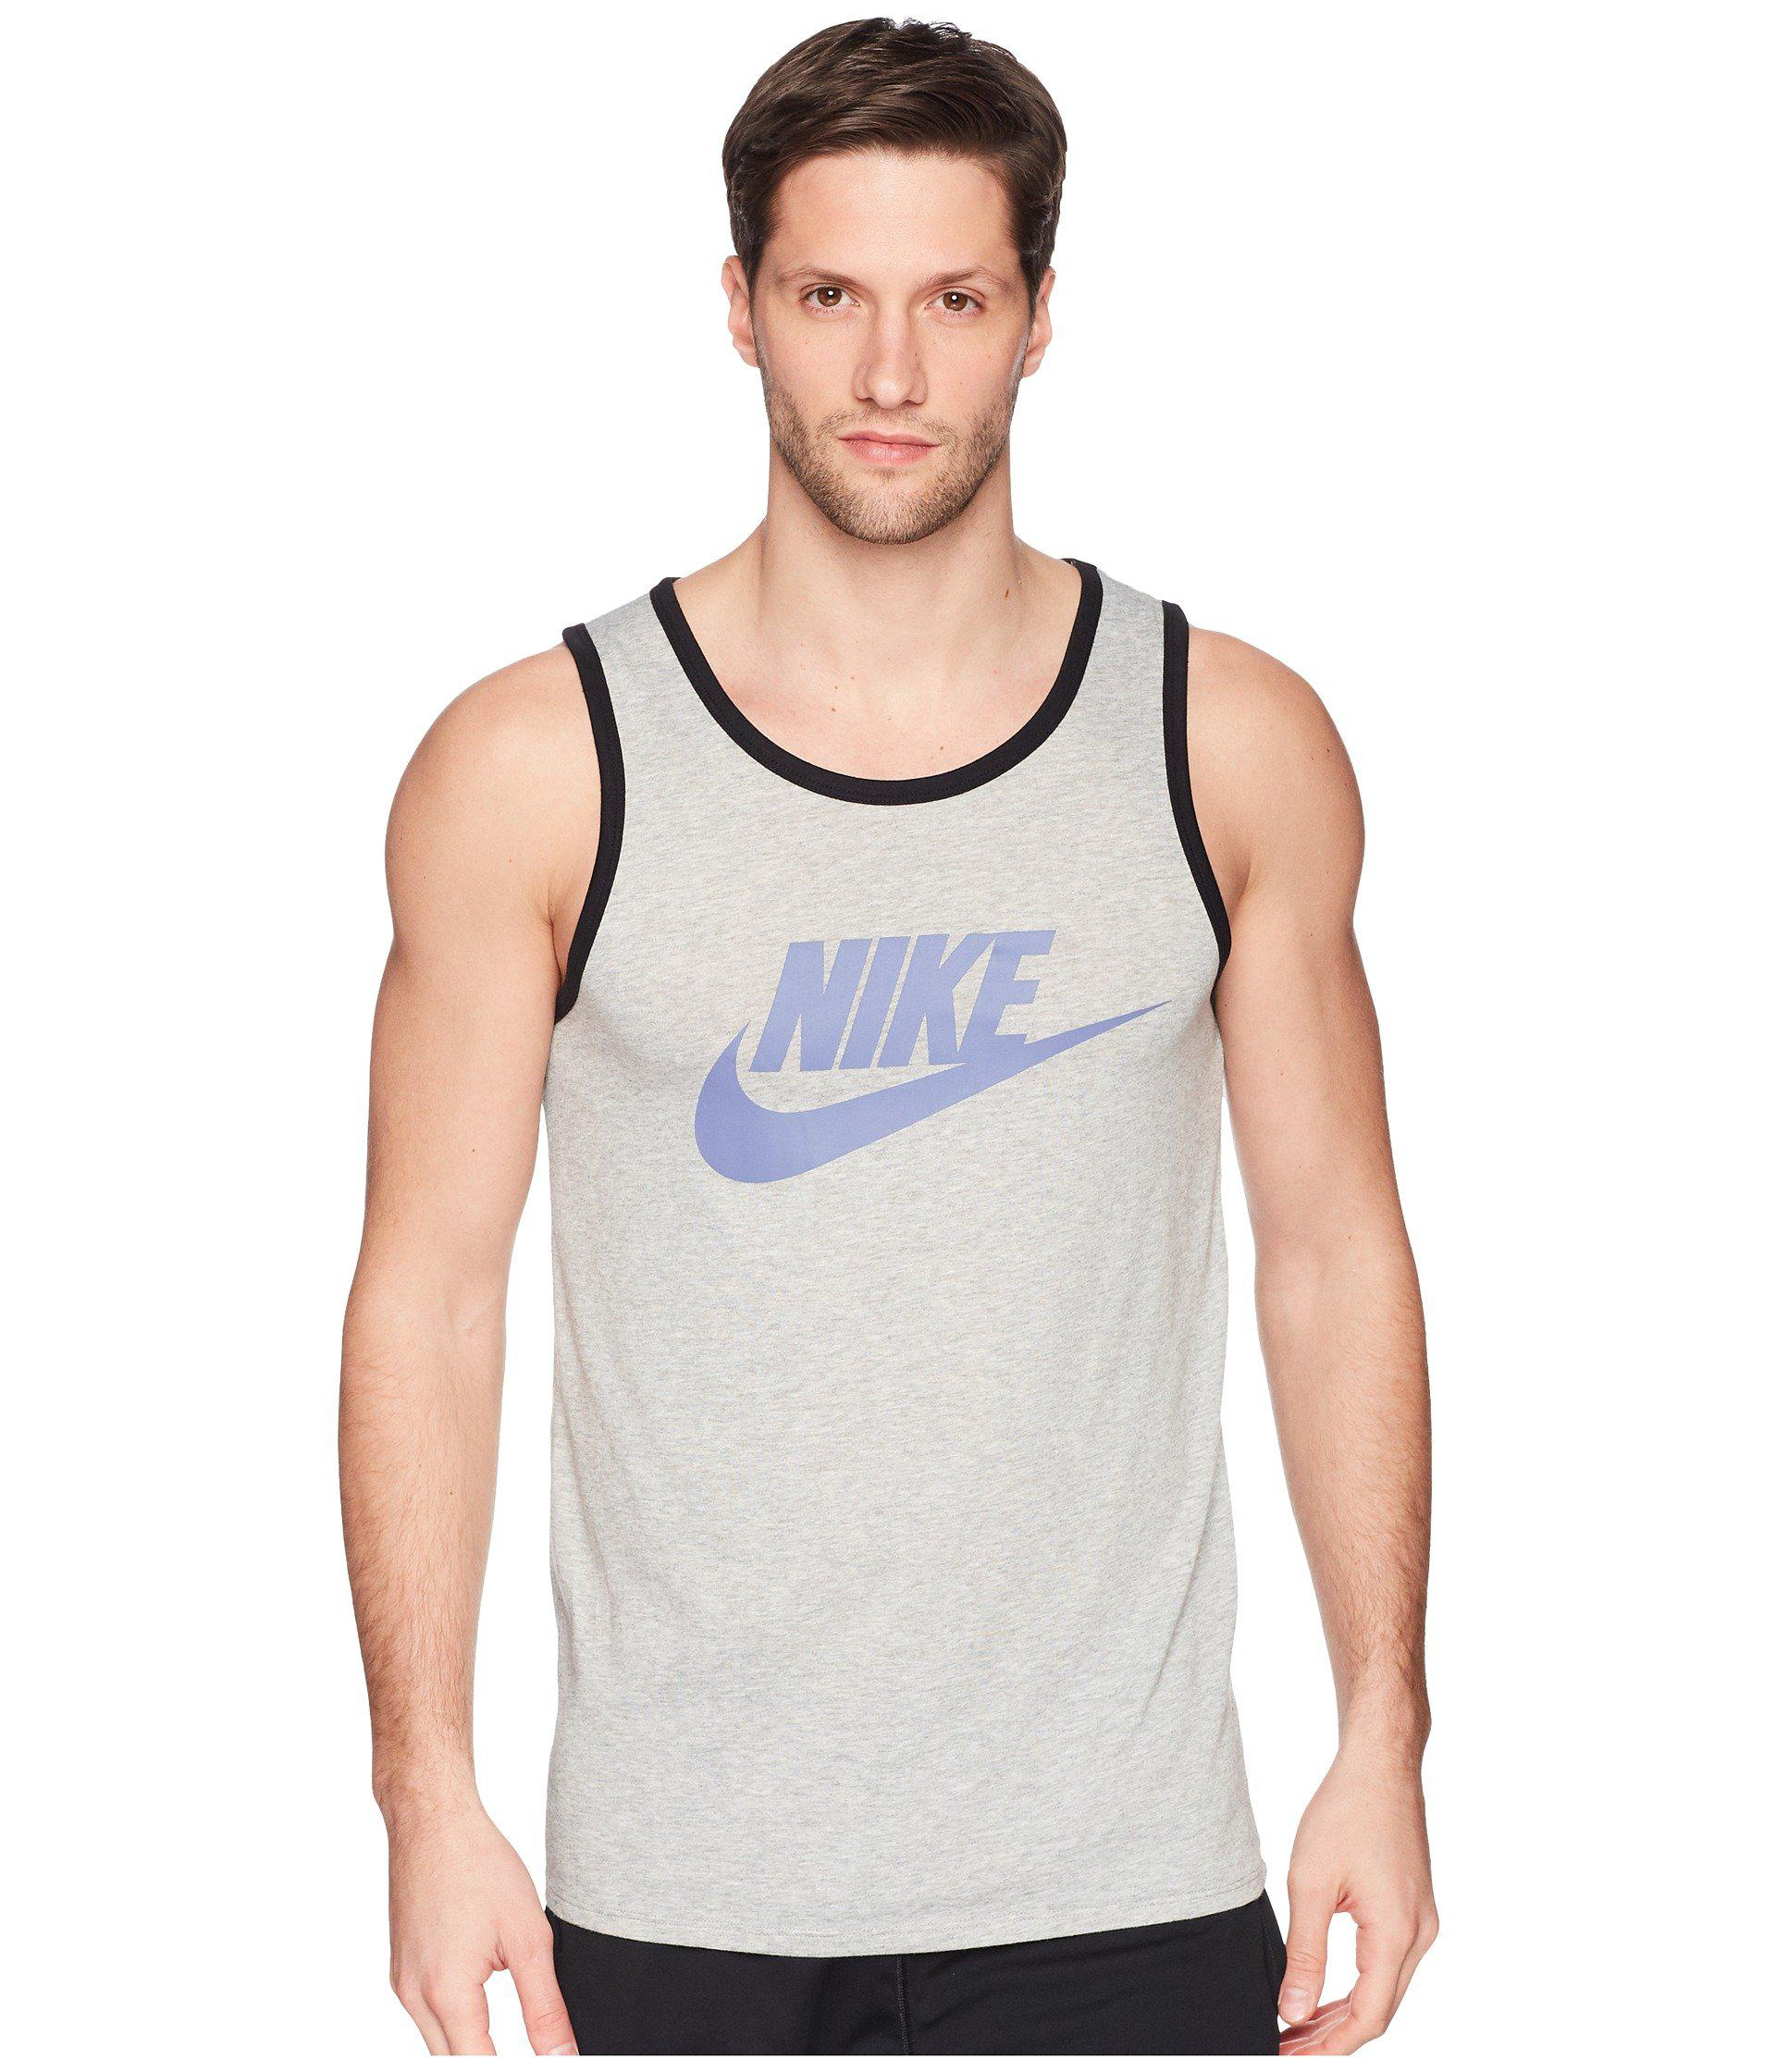 bf94c283d5586 Lyst - Nike Ace Logo Tank Top in Gray for Men - Save 20%